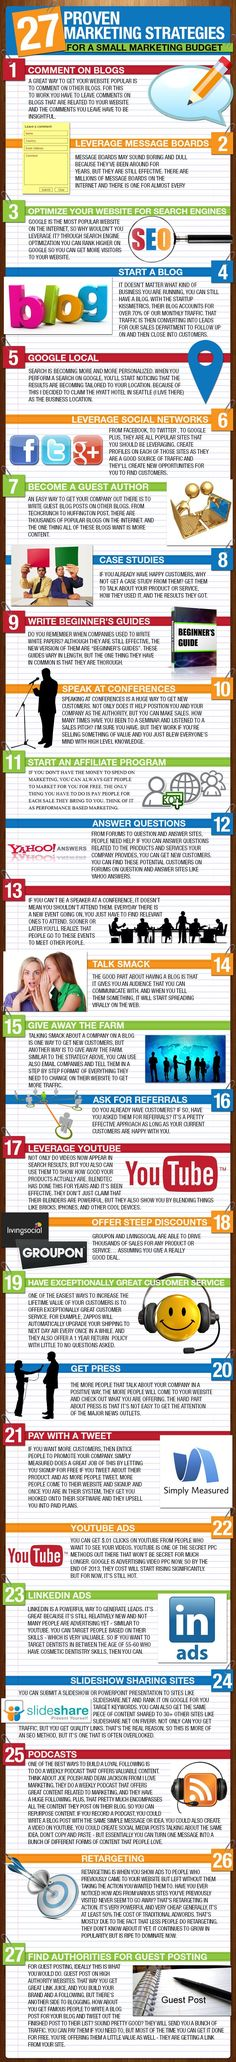 27 Proven Best Marketing Strategies For A Tiny Budget. This is why I love social marketing for small business - so many of these tips rely on having on online presence. This infographic explains all the social media and beyond. Social Marketing, Inbound Marketing, Budget Marketing, Mundo Marketing, Marketing Trends, Small Business Marketing, Sales And Marketing, Marketing Tools, Marketing And Advertising